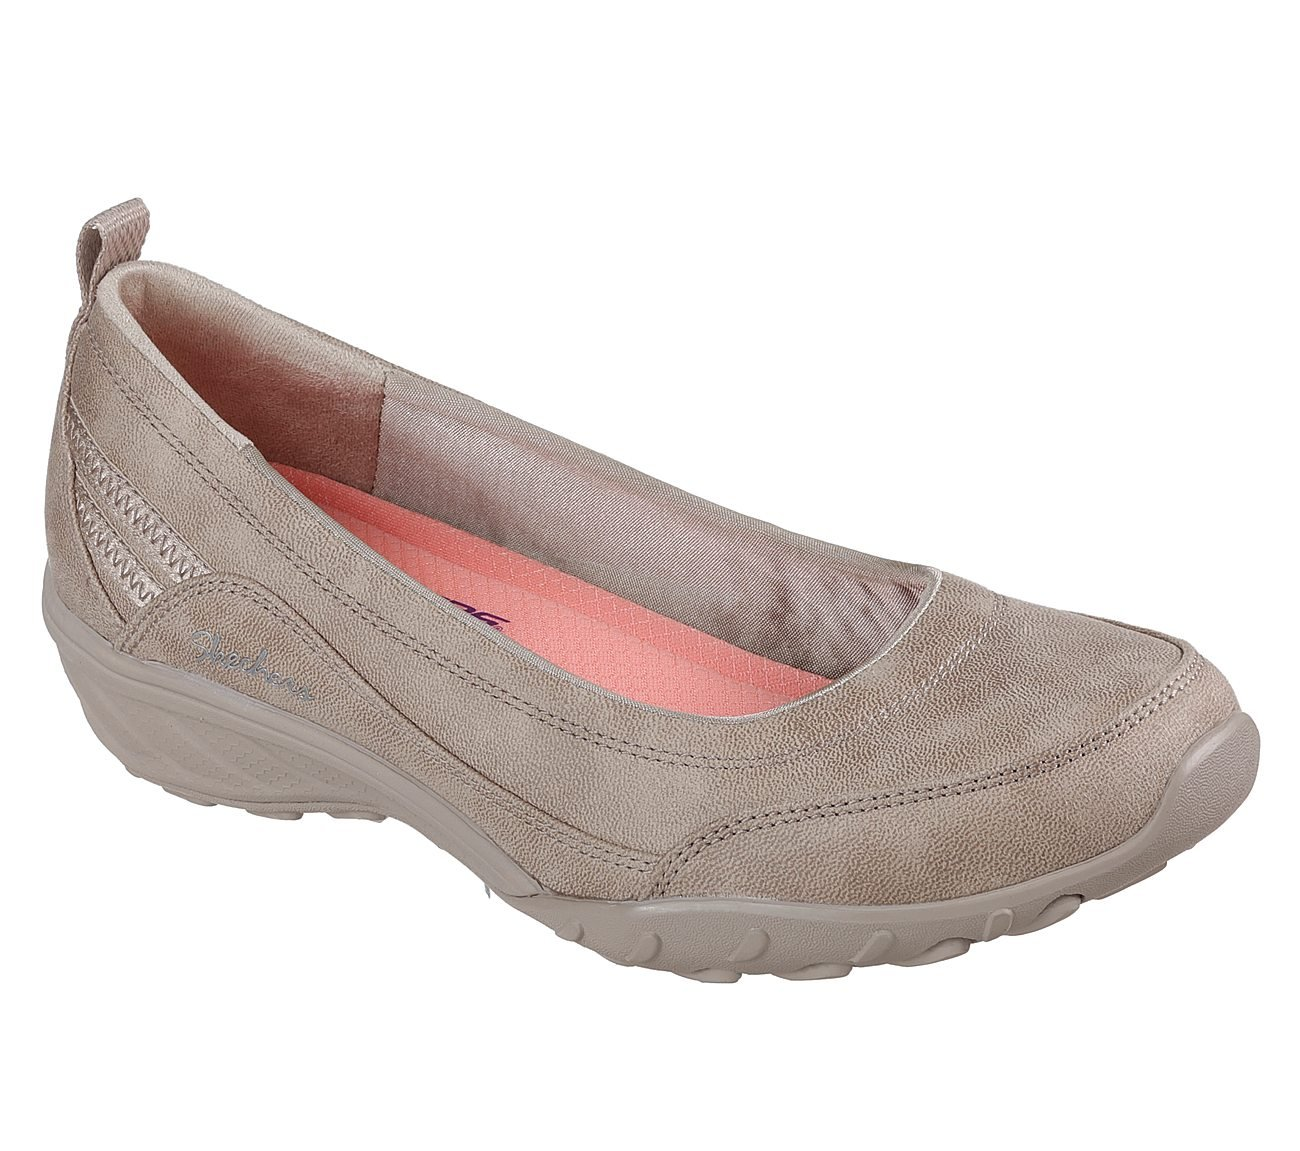 Skechers Relaxed Fit Savvy Nobodys Fool Damen Sommerschuhe Slip on Slipper TPE Ballerinas  35 EU|Taupe